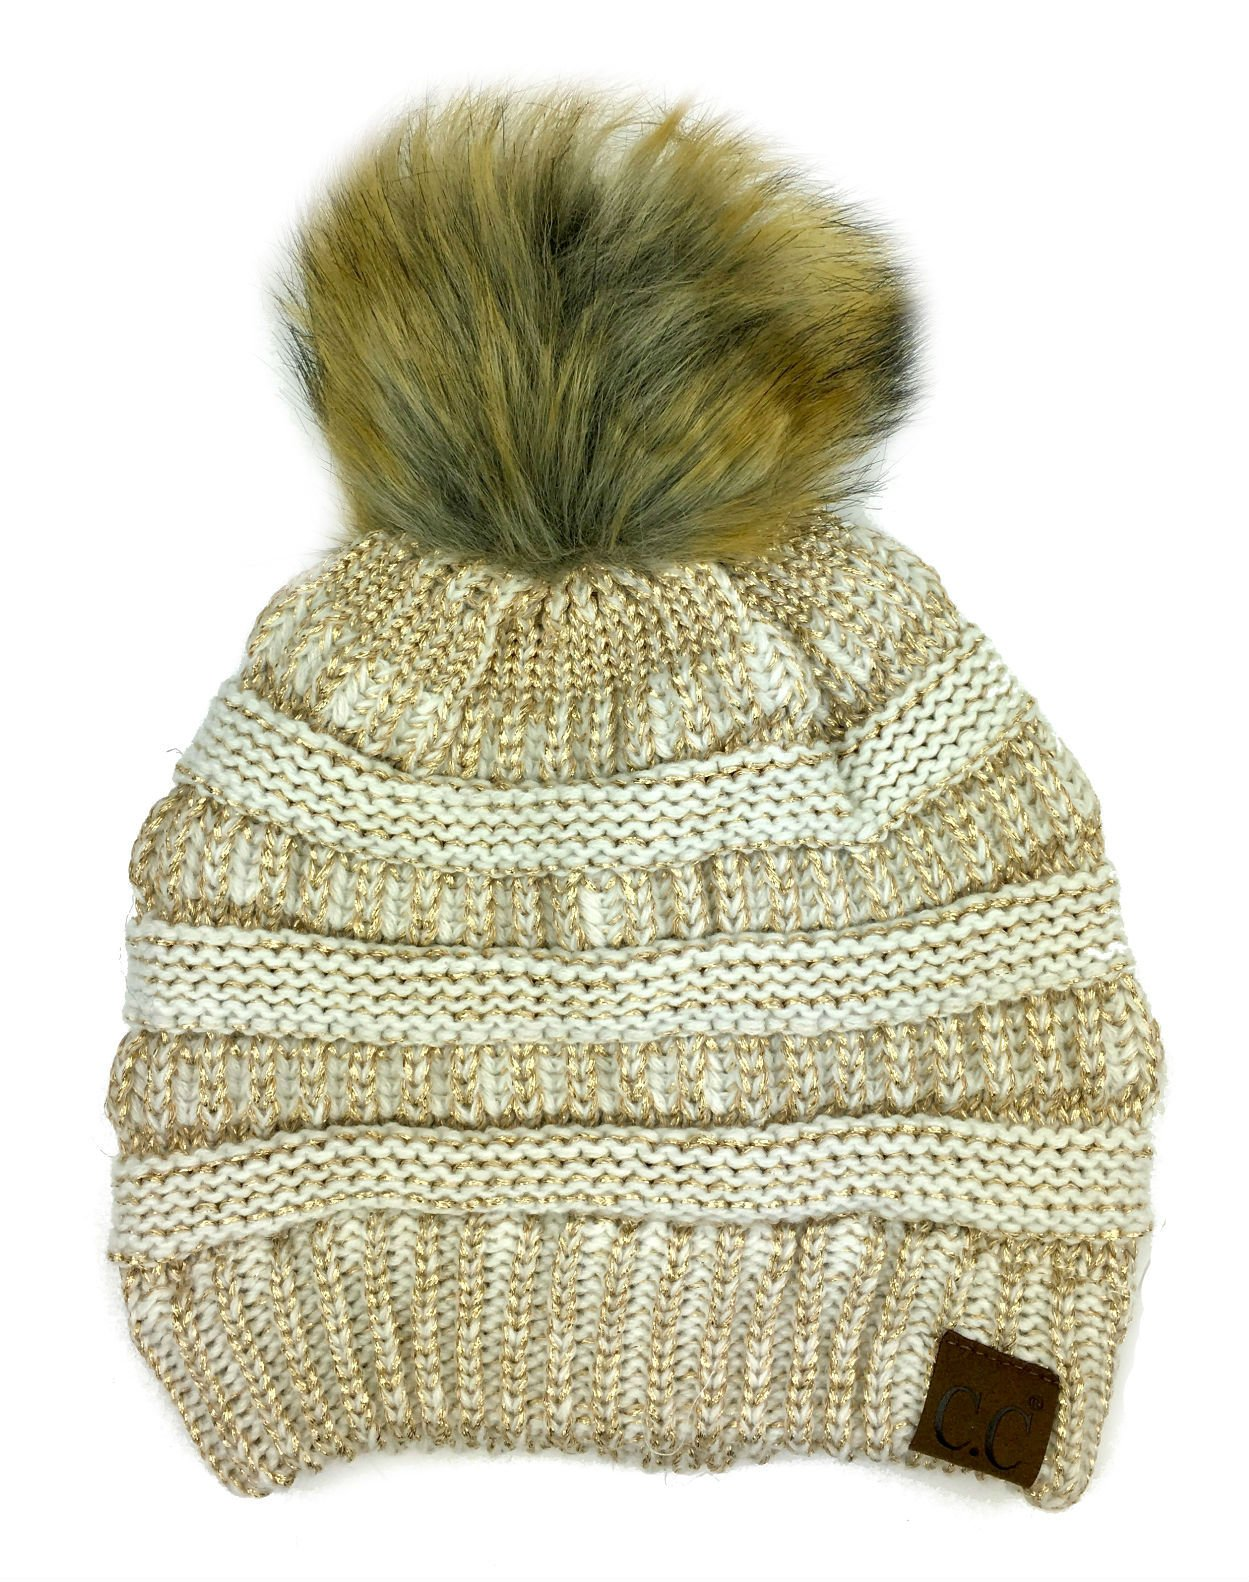 Plum Feathers Soft Stretch Cable Knit Ribbed Faux Fur Pom Pom Beanie Hat (Ivory-Gold Metallic) by Plum Feathers